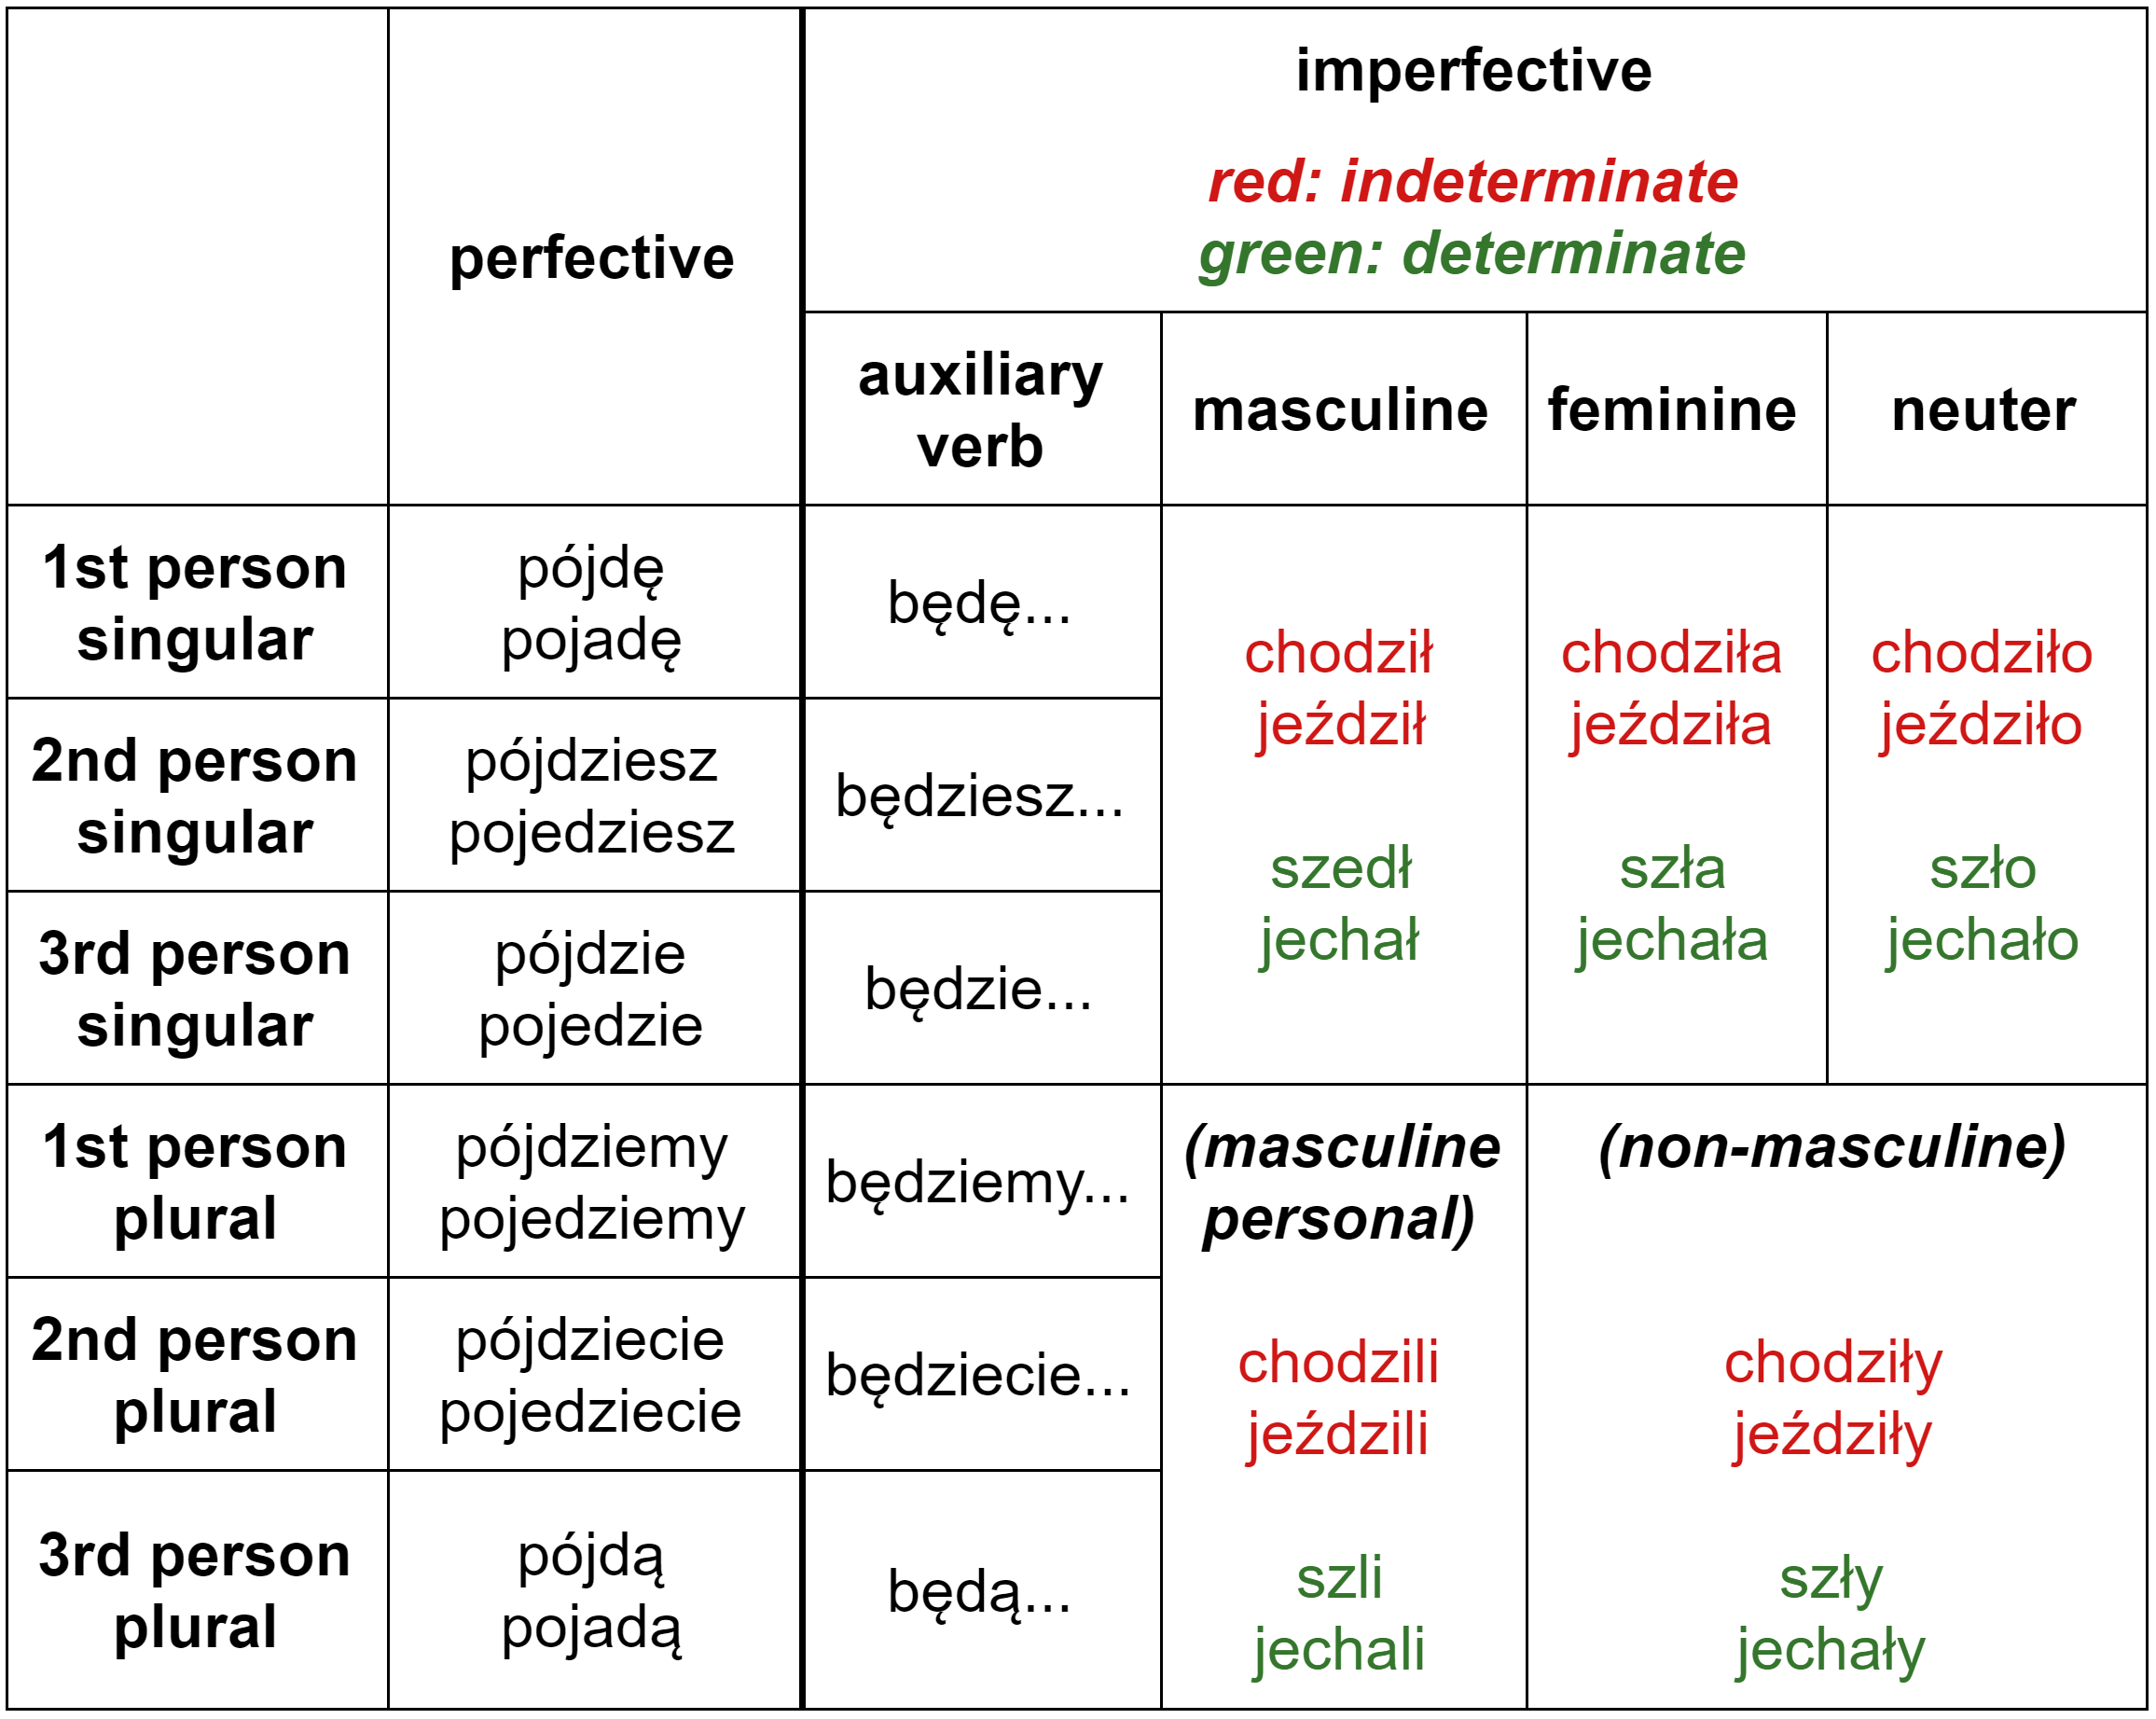 Polish Verbs Of Motion Isc Jechac And Other Related Verbs